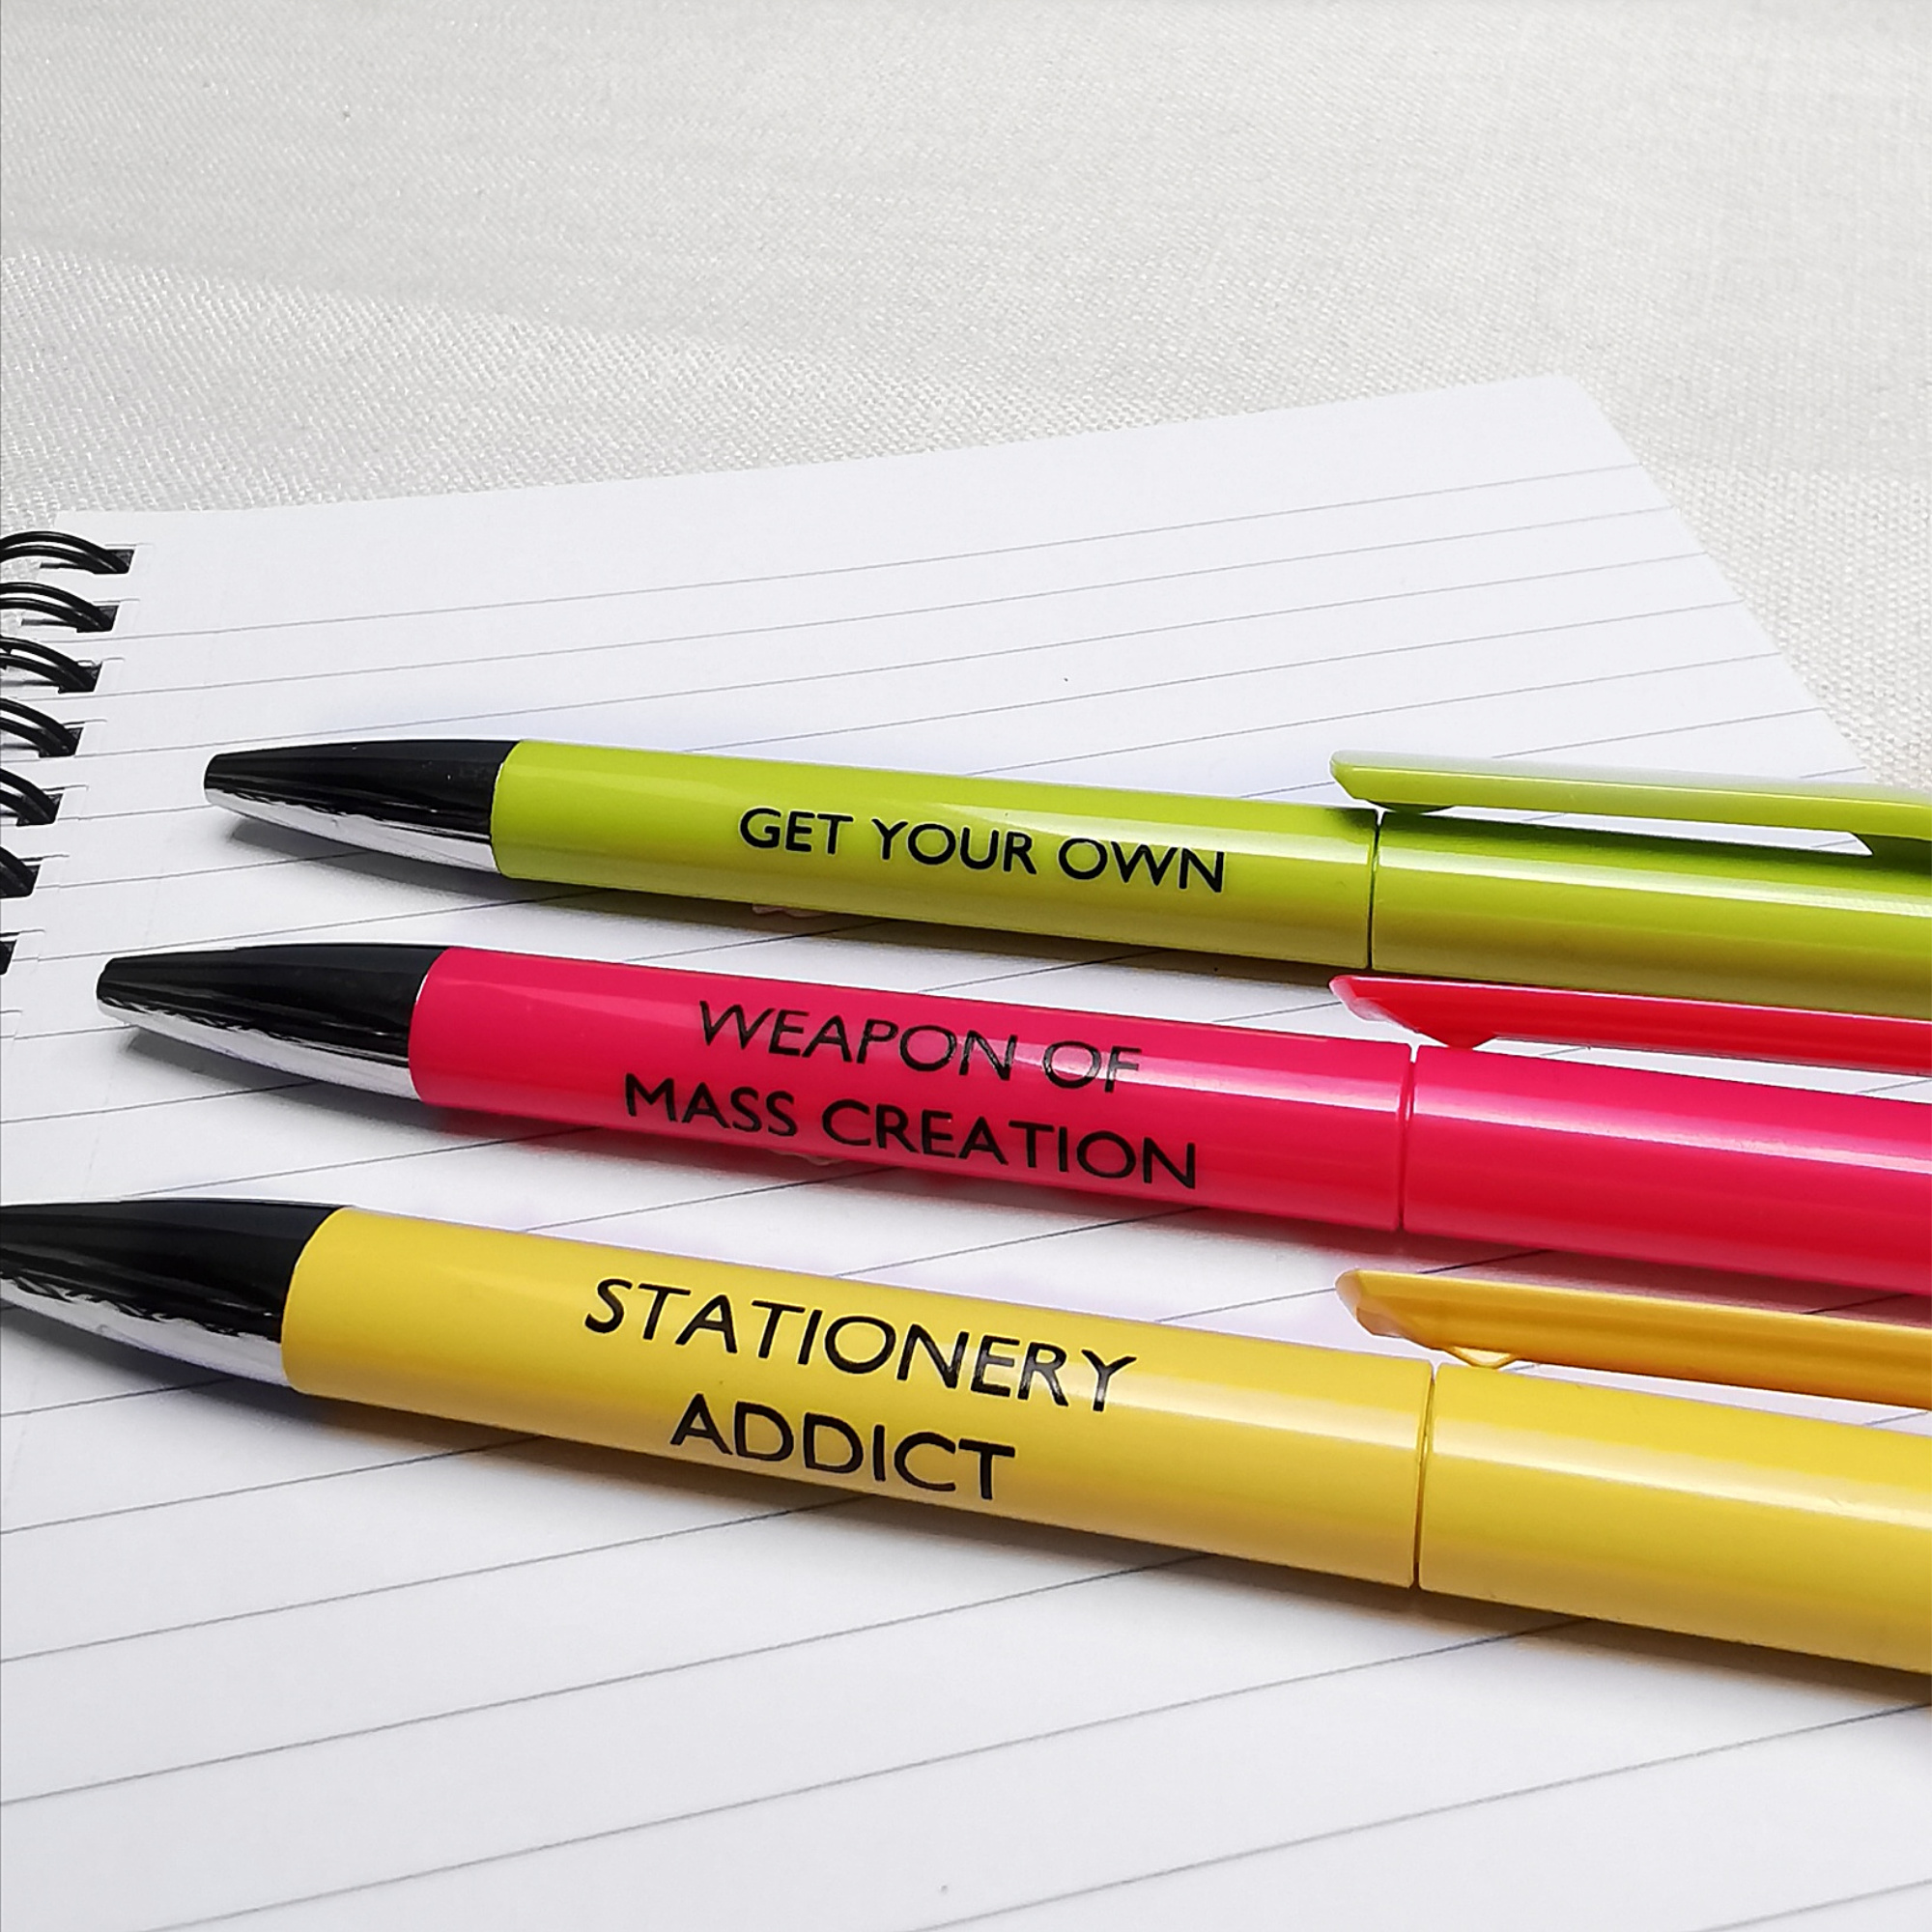 Stationery Addict Pen Collection